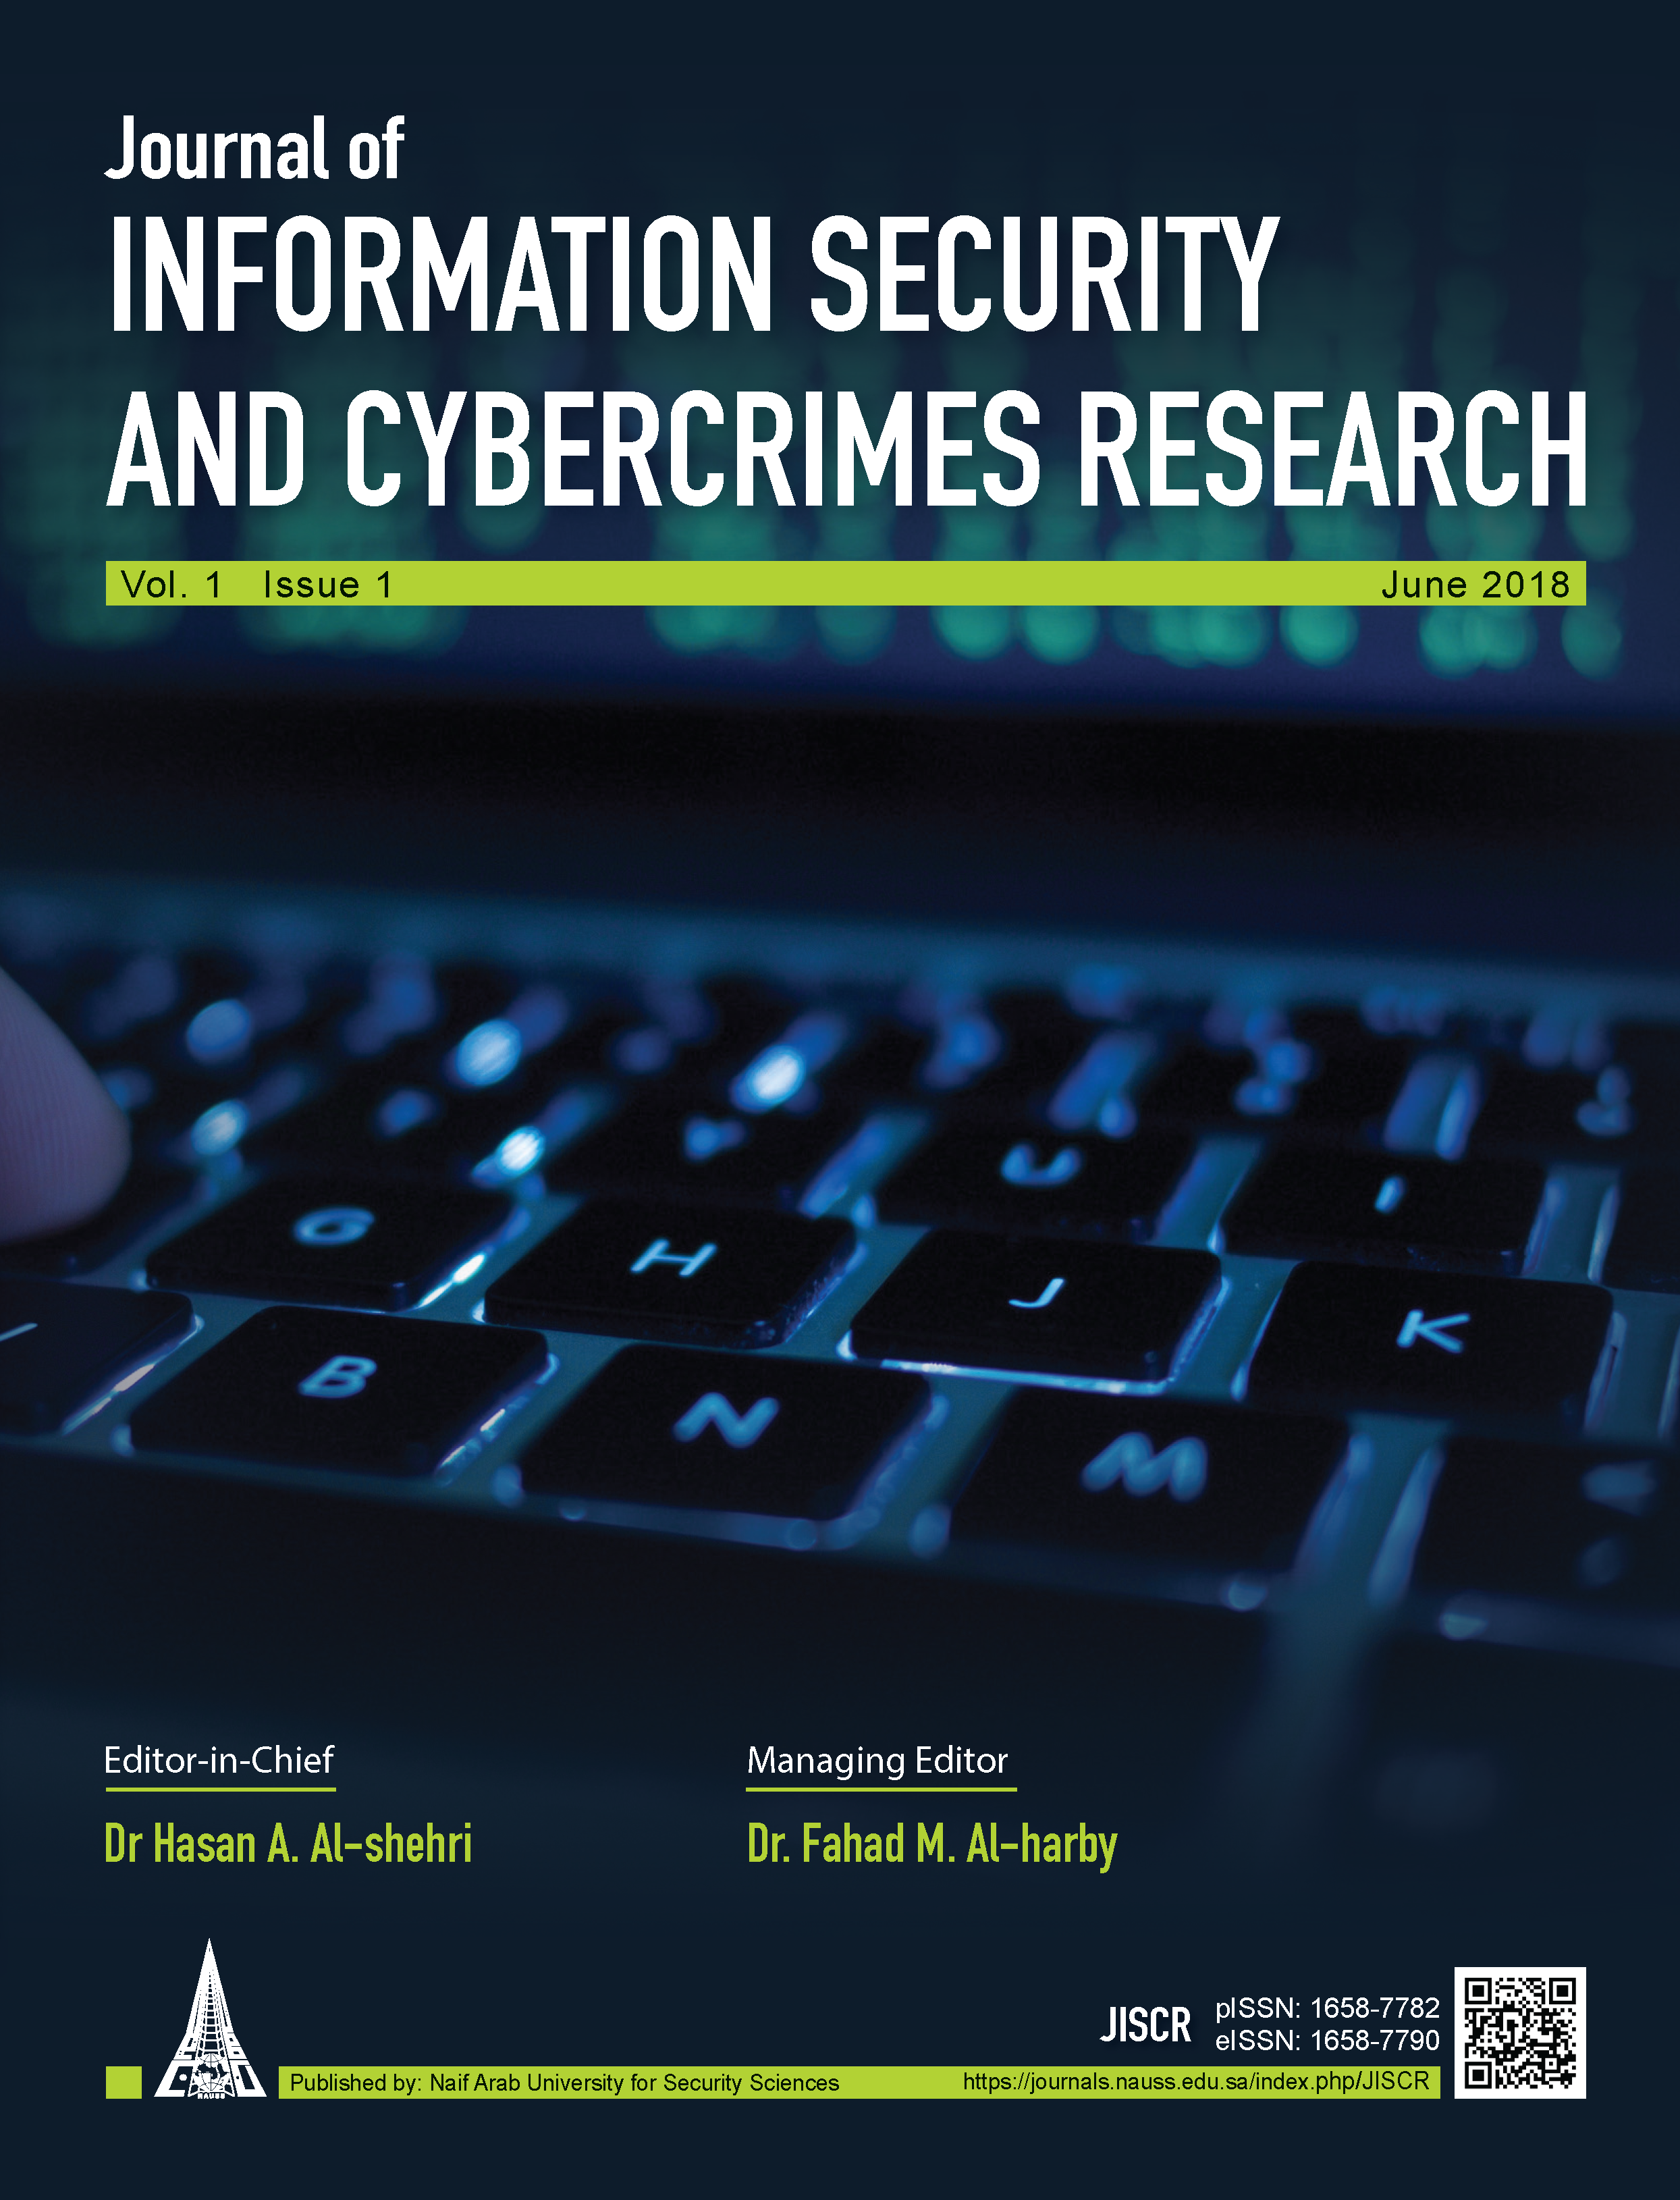 Journal of Information Security and Cybercrimes Research